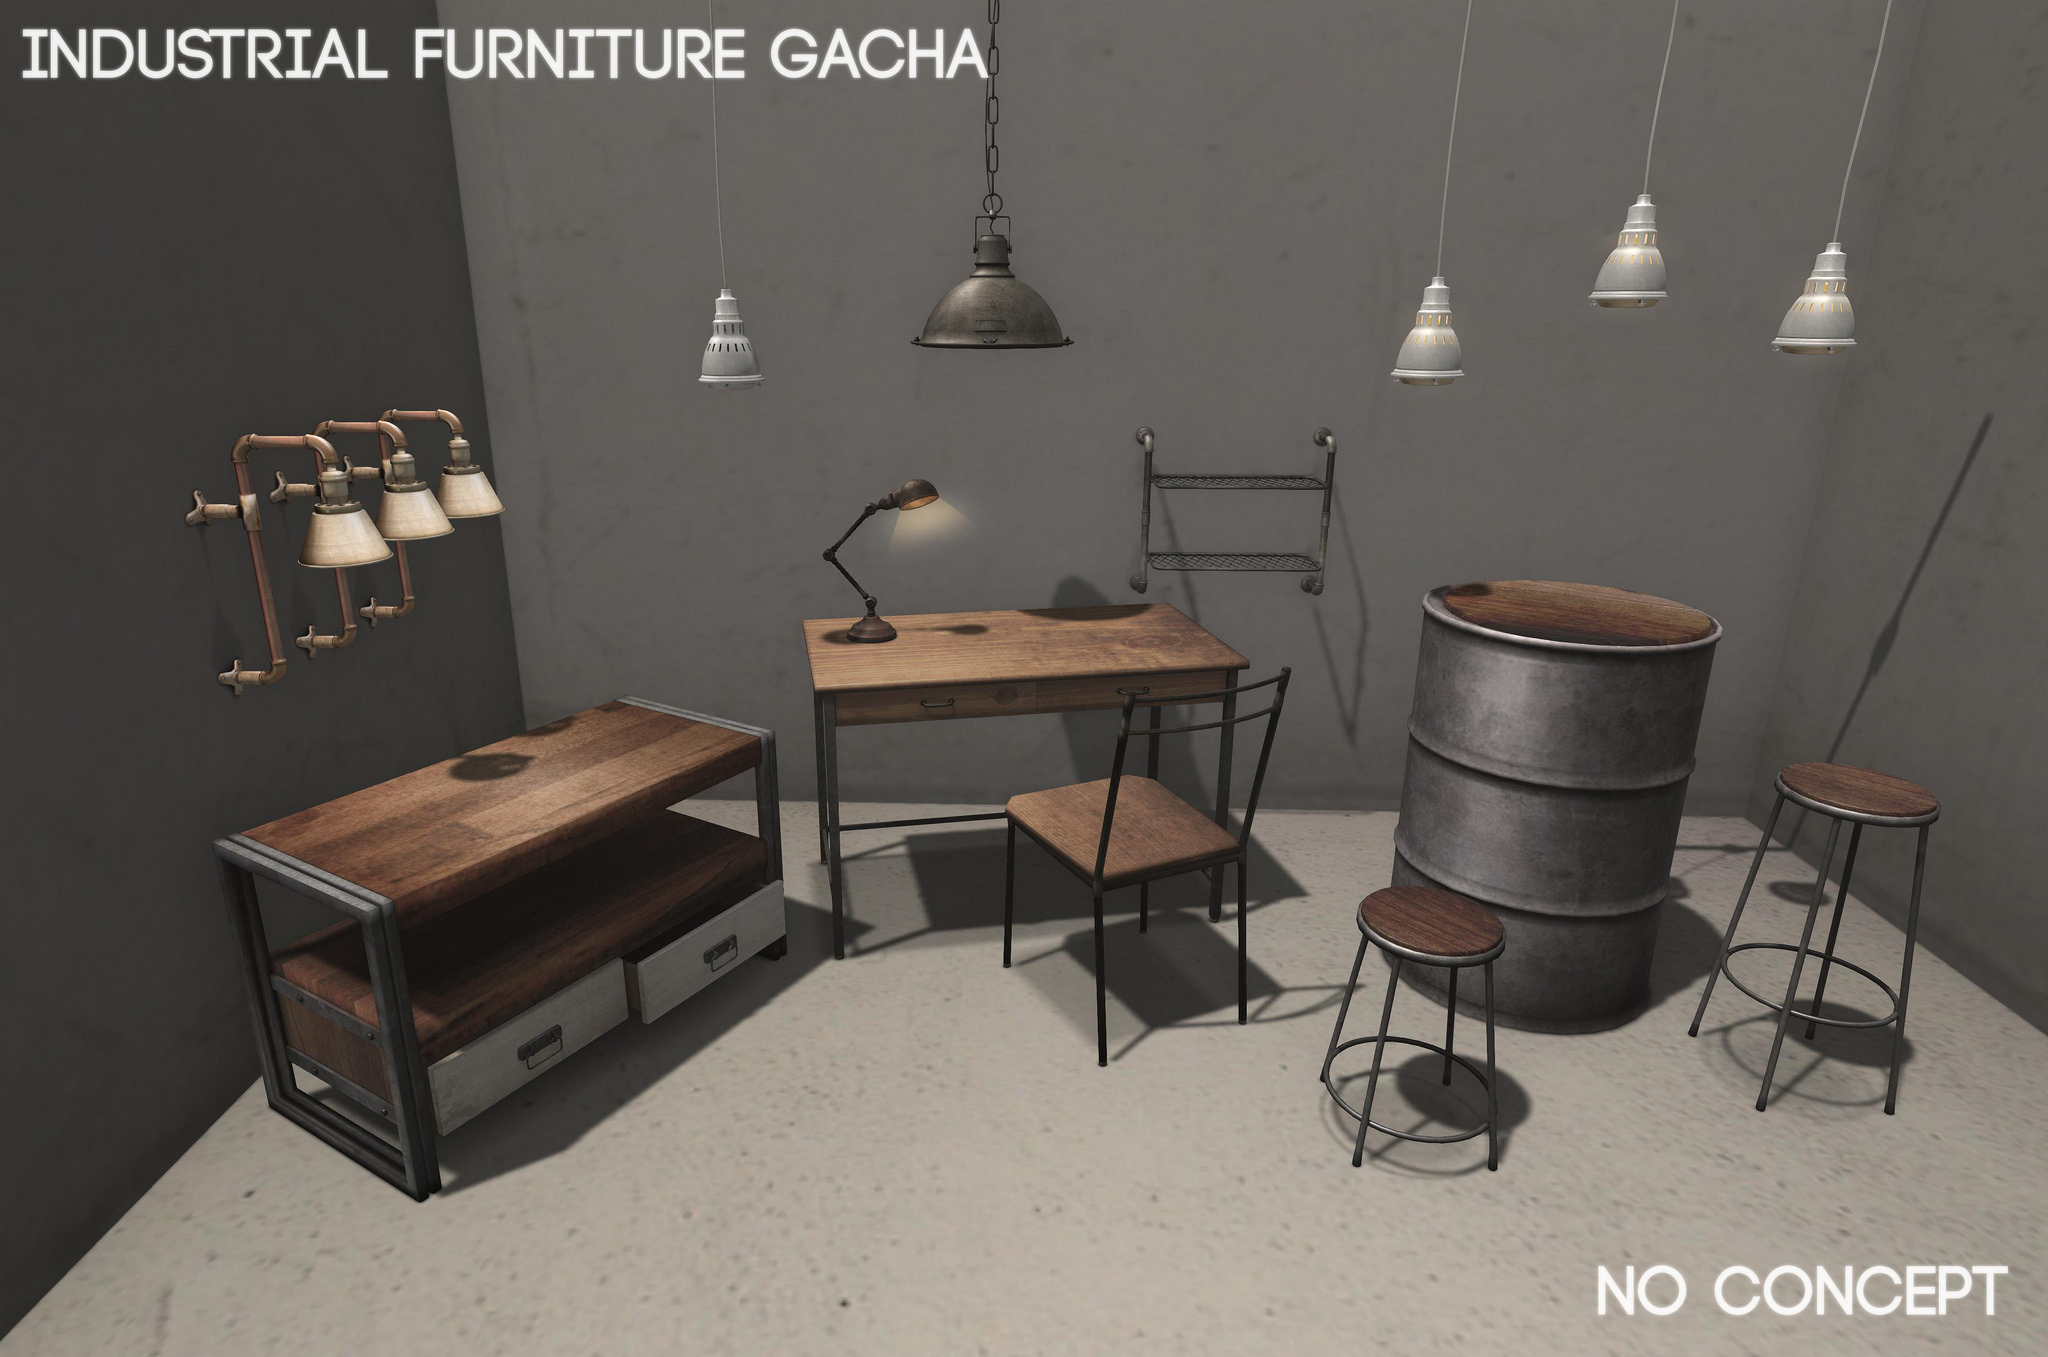 [NO CONCEPT] U2013 INDUSTRIAL FURNITURE GACHA PREVIEW